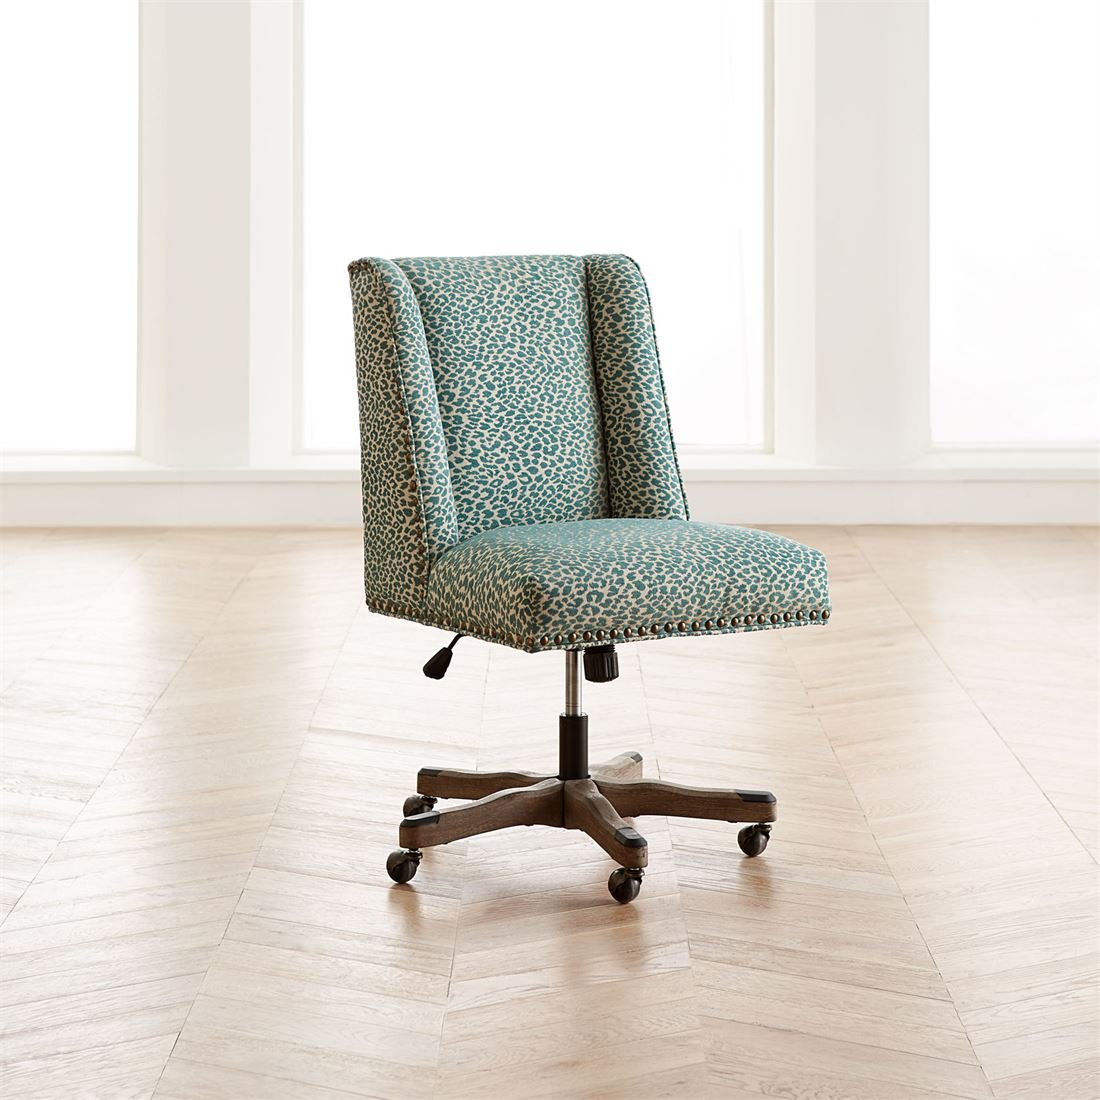 Brylanehome Quincy Office Chair (Teal Leopard,0)